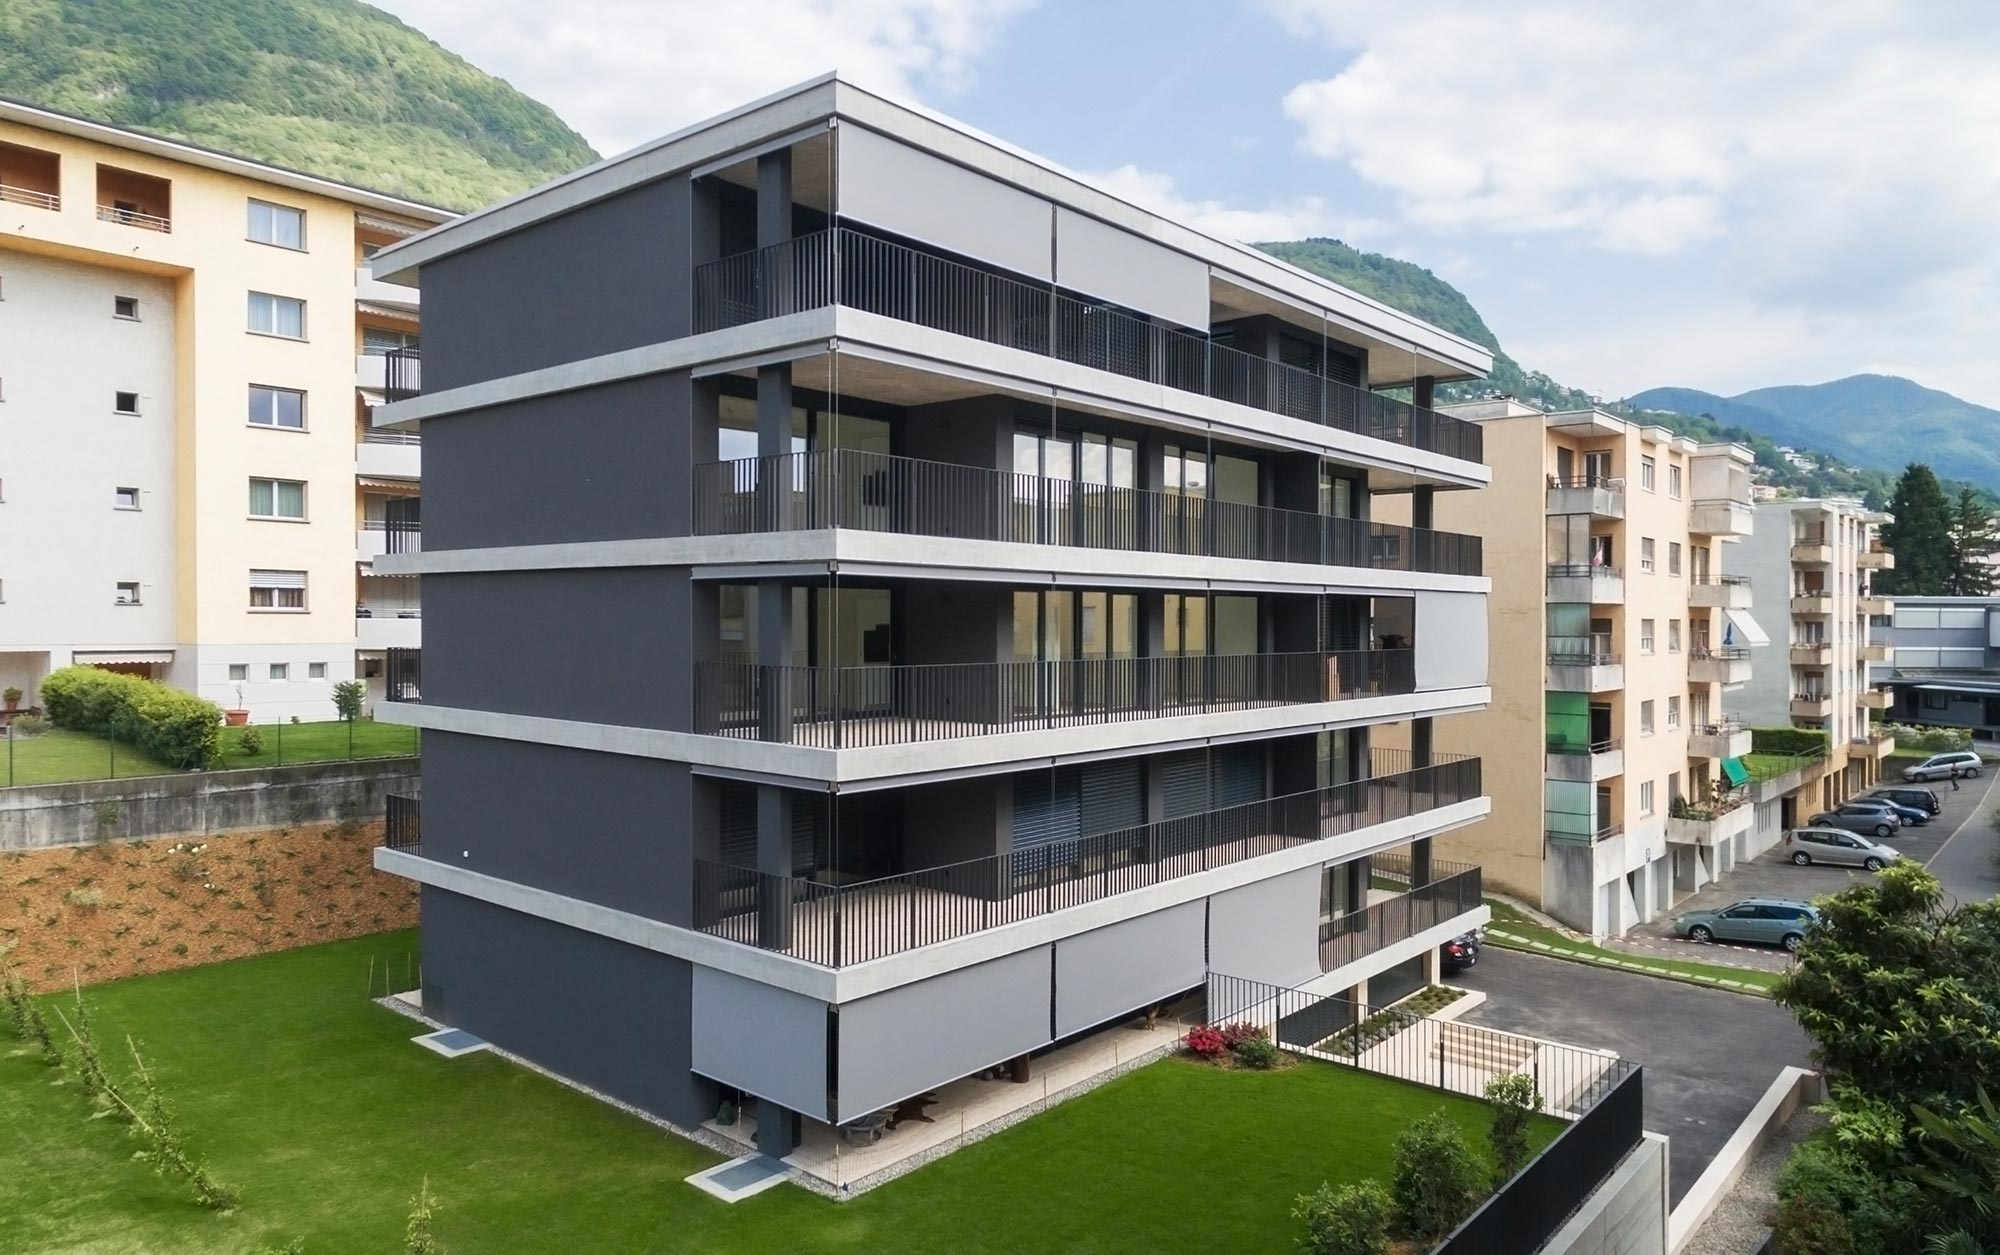 Rent a 3 room Detached house property in Lugano